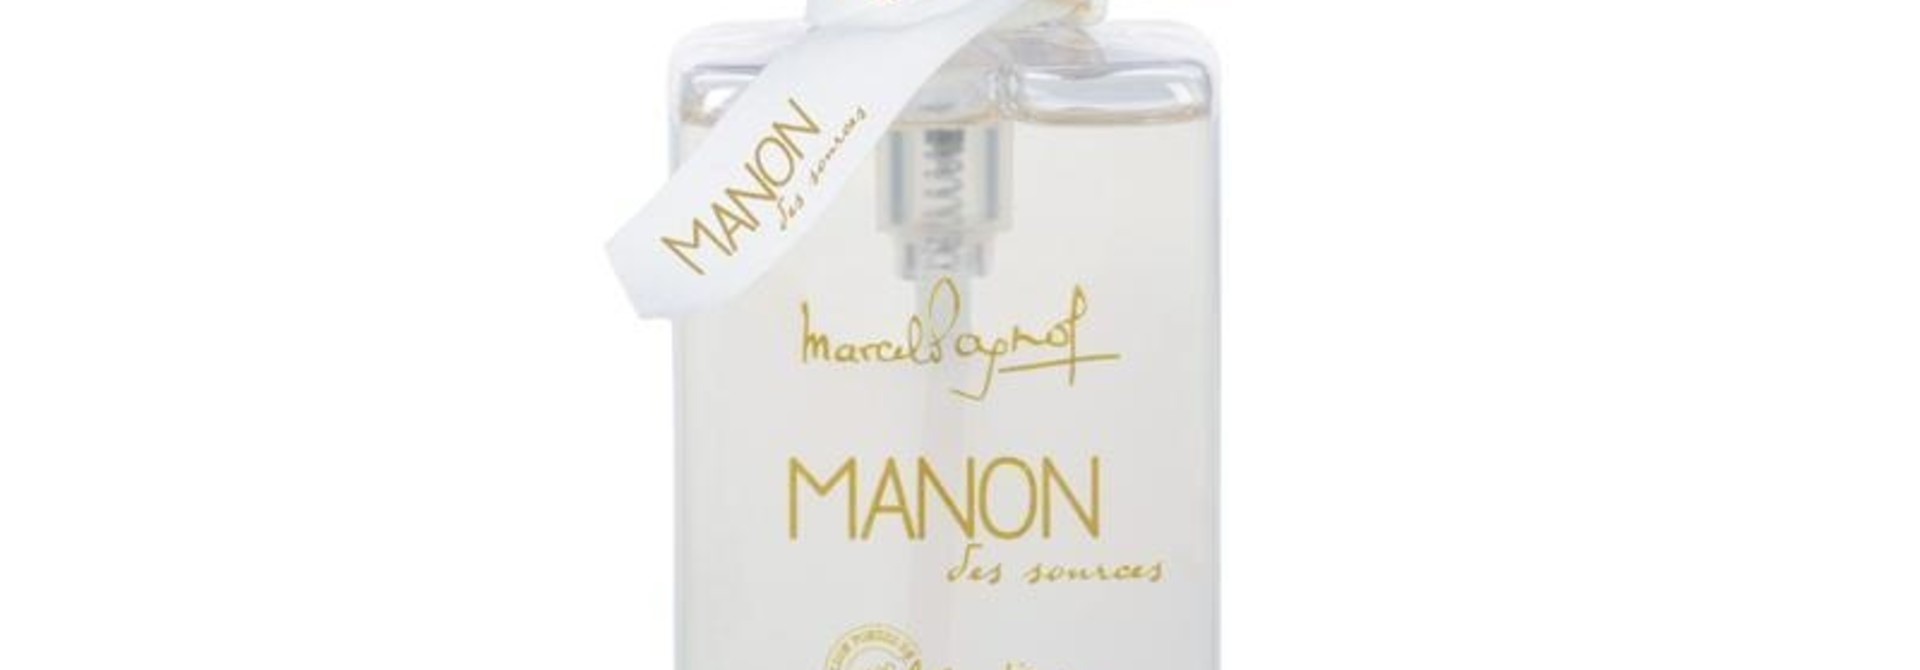 Manon des Sources - 300ml Liquid Soap